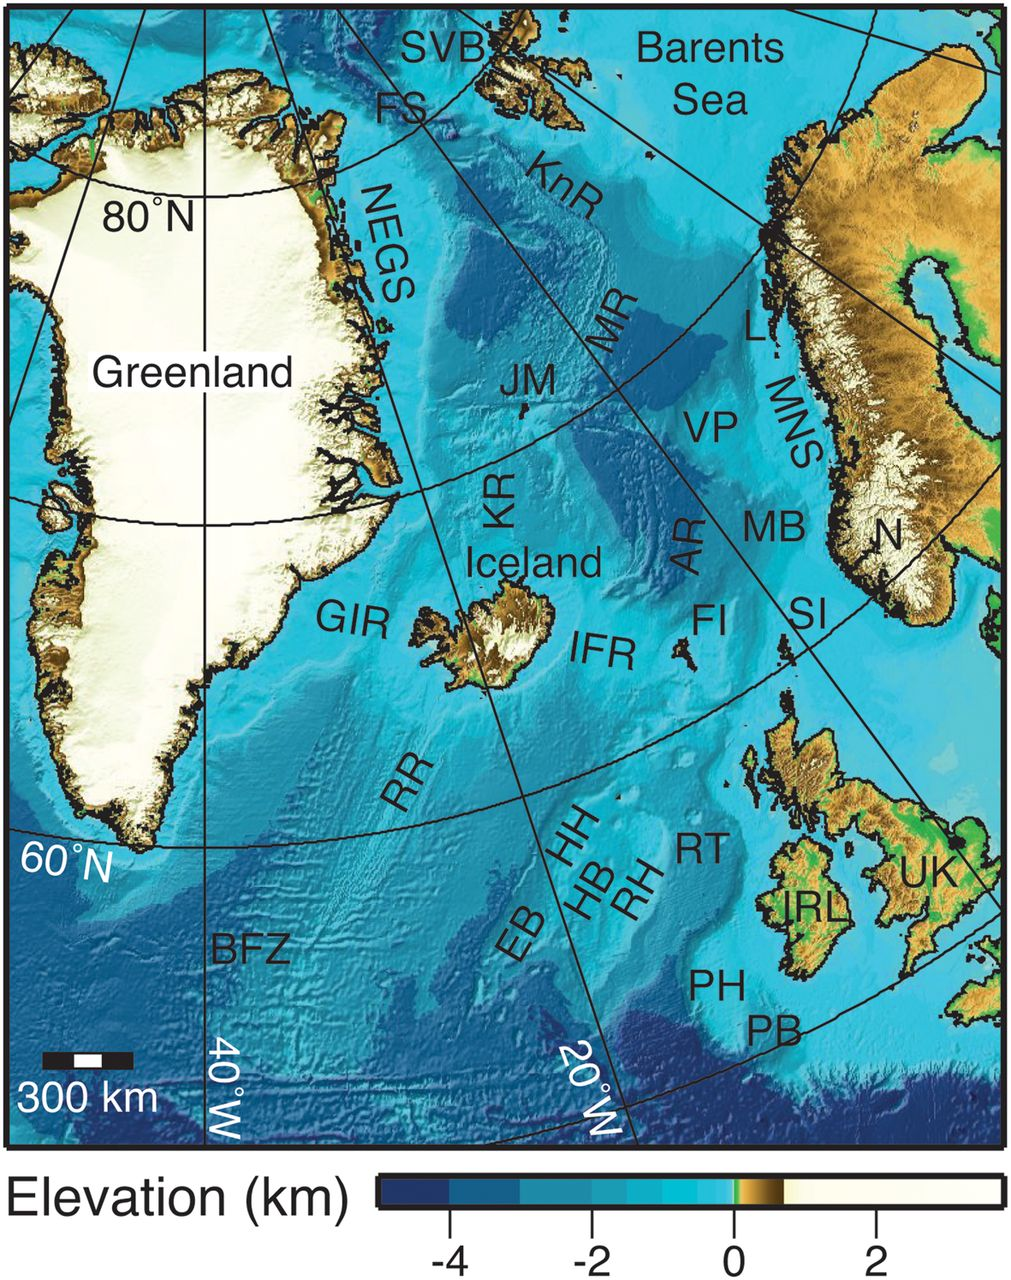 Moho and basement depth in the ne atlantic ocean based on seismic download figure gumiabroncs Image collections